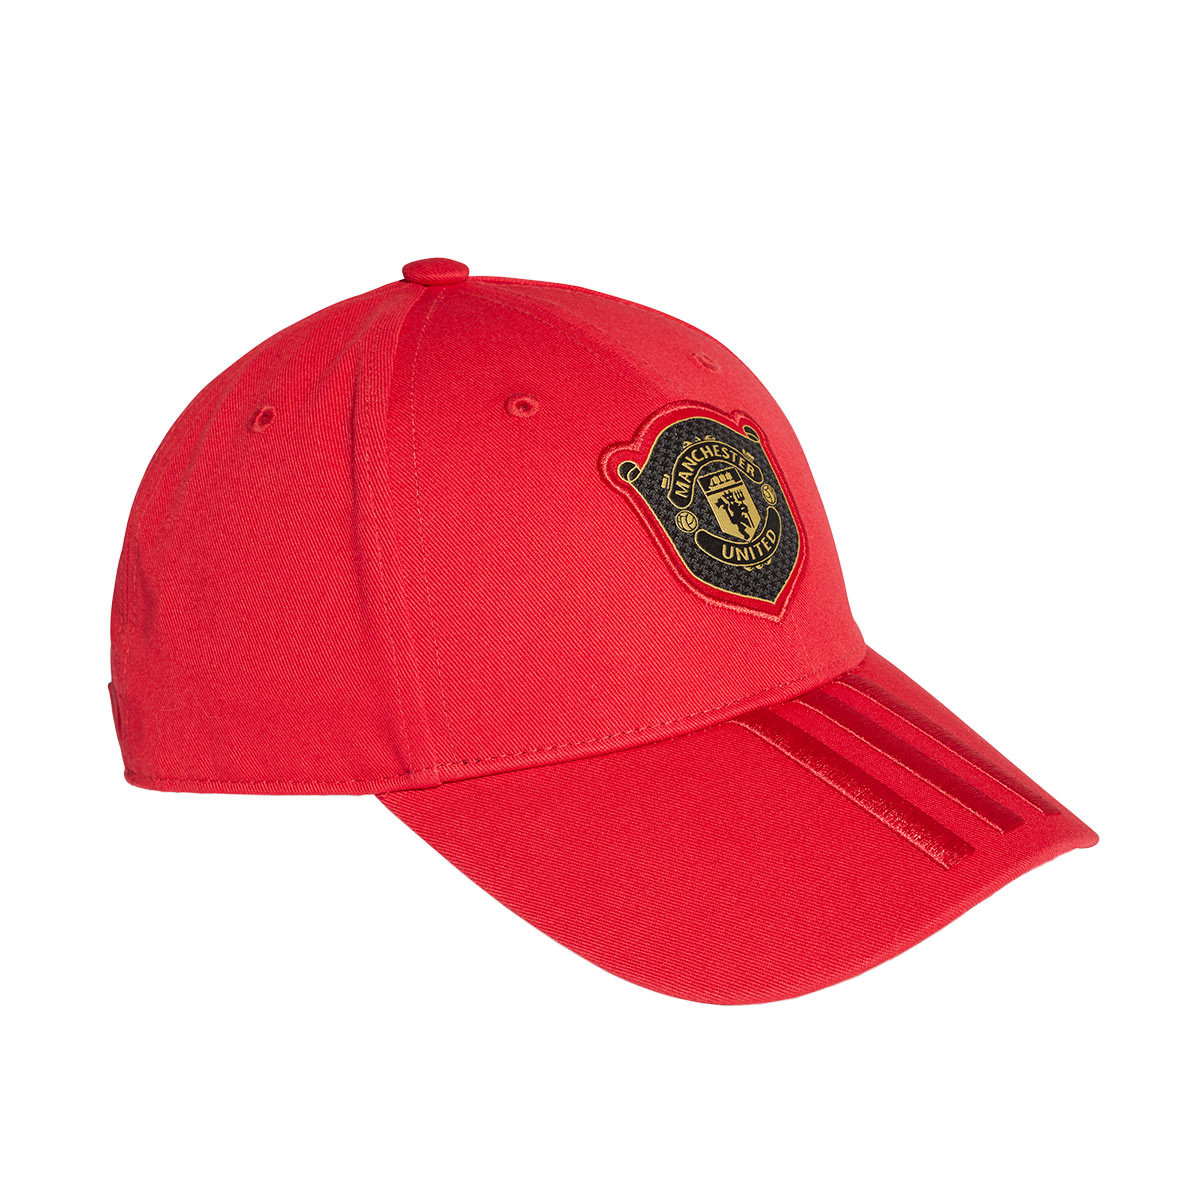 cappello adidas manchester united fc c40 2019 2020 real red power red black negozio di calcio futbol emotion cappello adidas manchester united fc c40 2019 2020